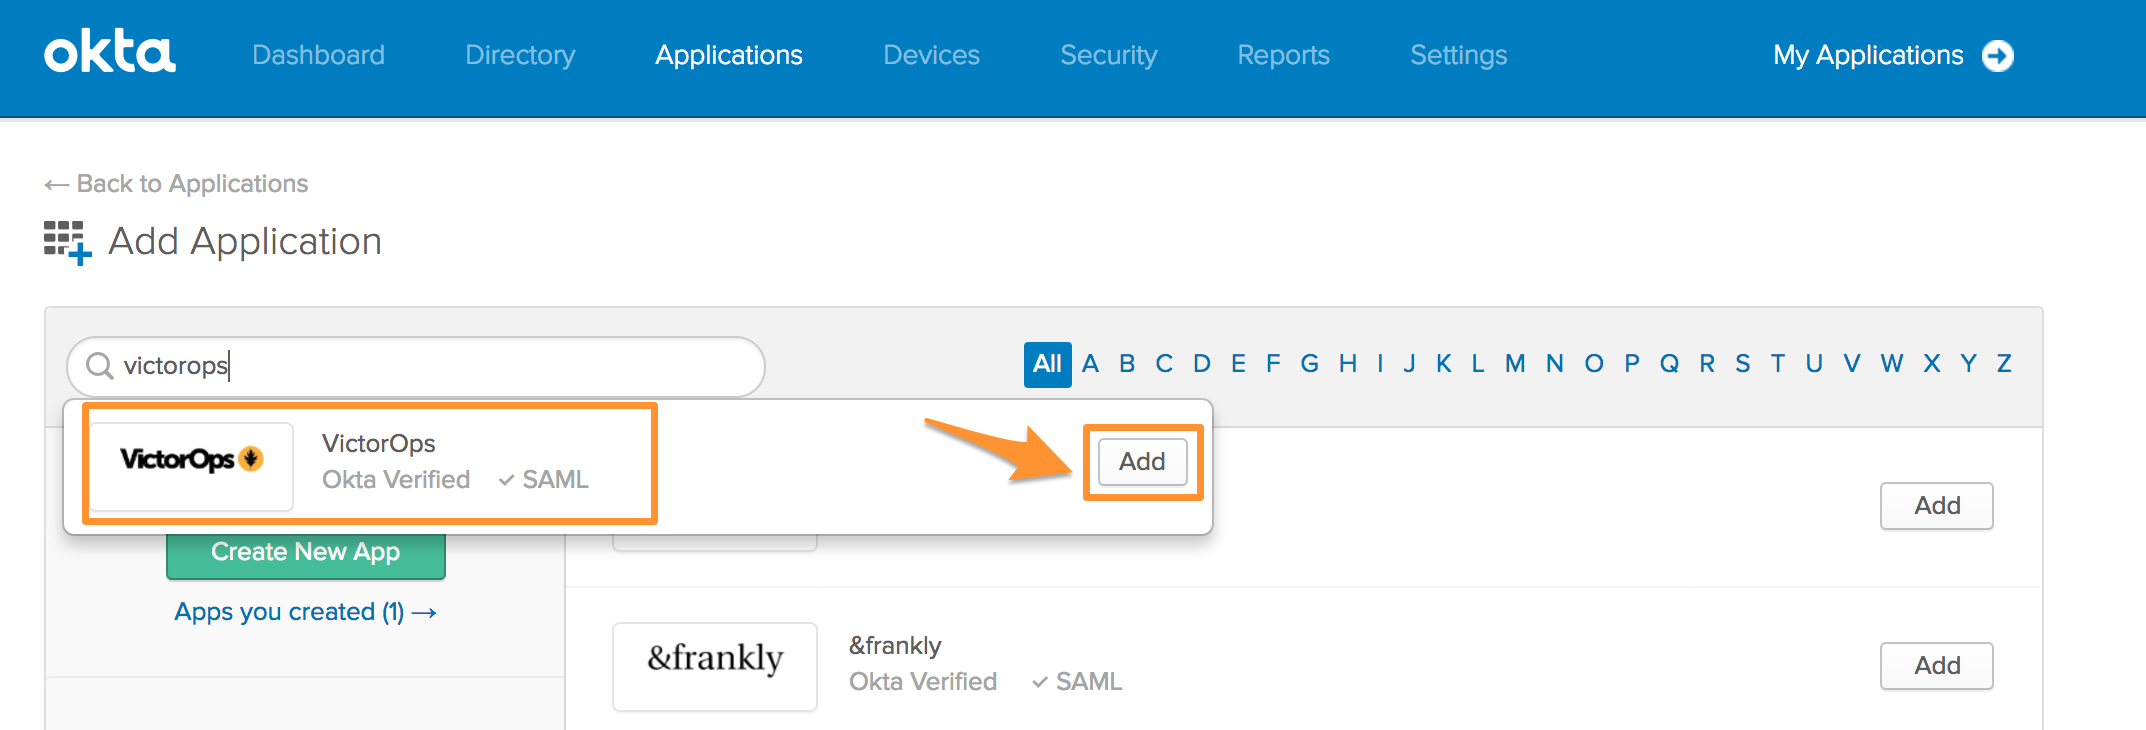 Setting Up Single Sign On (SSO) - VictorOps Knowledge Base